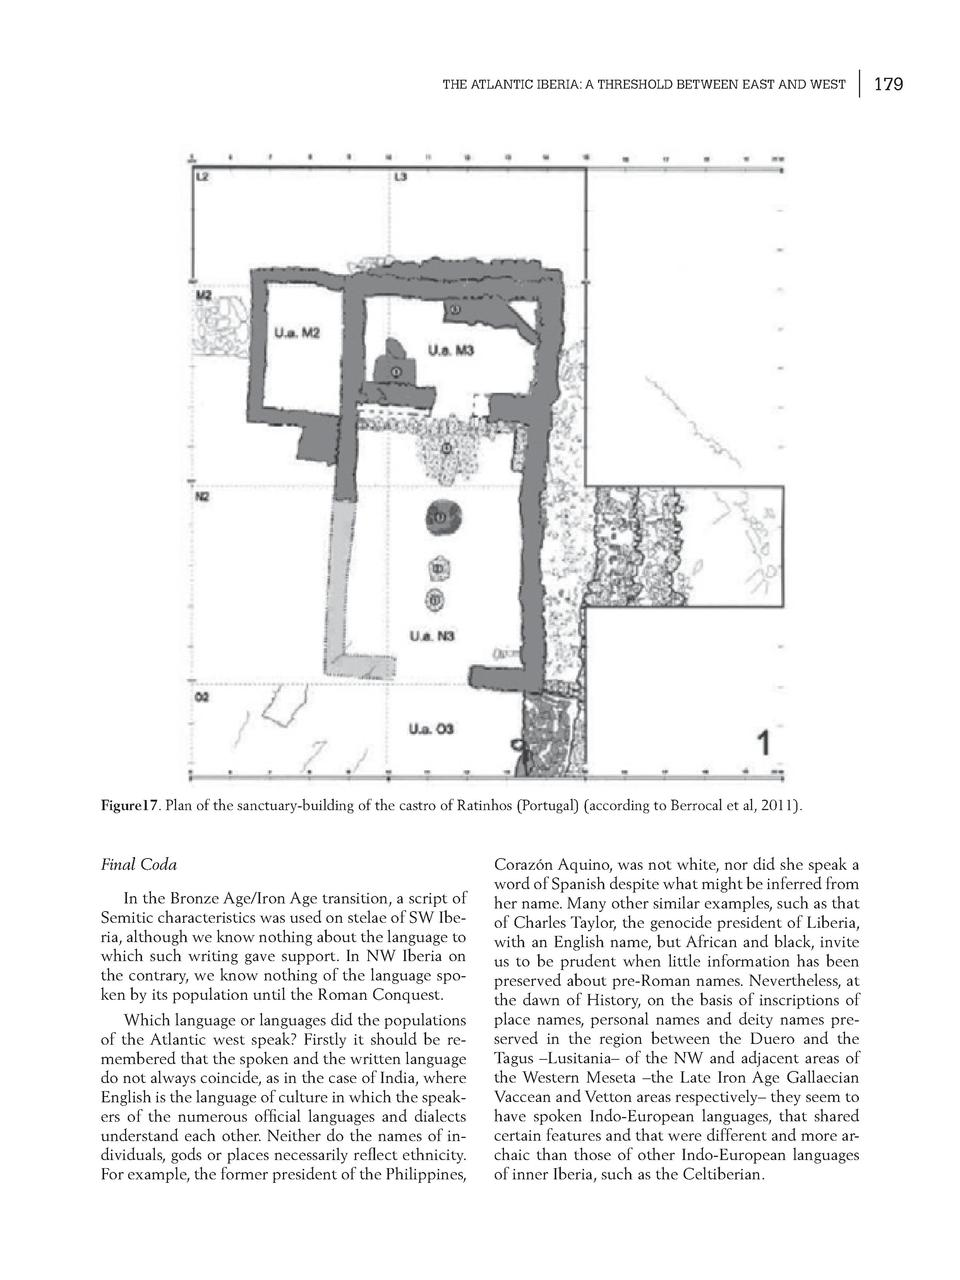 THE ATLANTIC IBERIA  A THRESHOLD BETWEEN EAST AND WEST  Figure17. Plan of the sanctuary-building of the castro of Ratinhos...